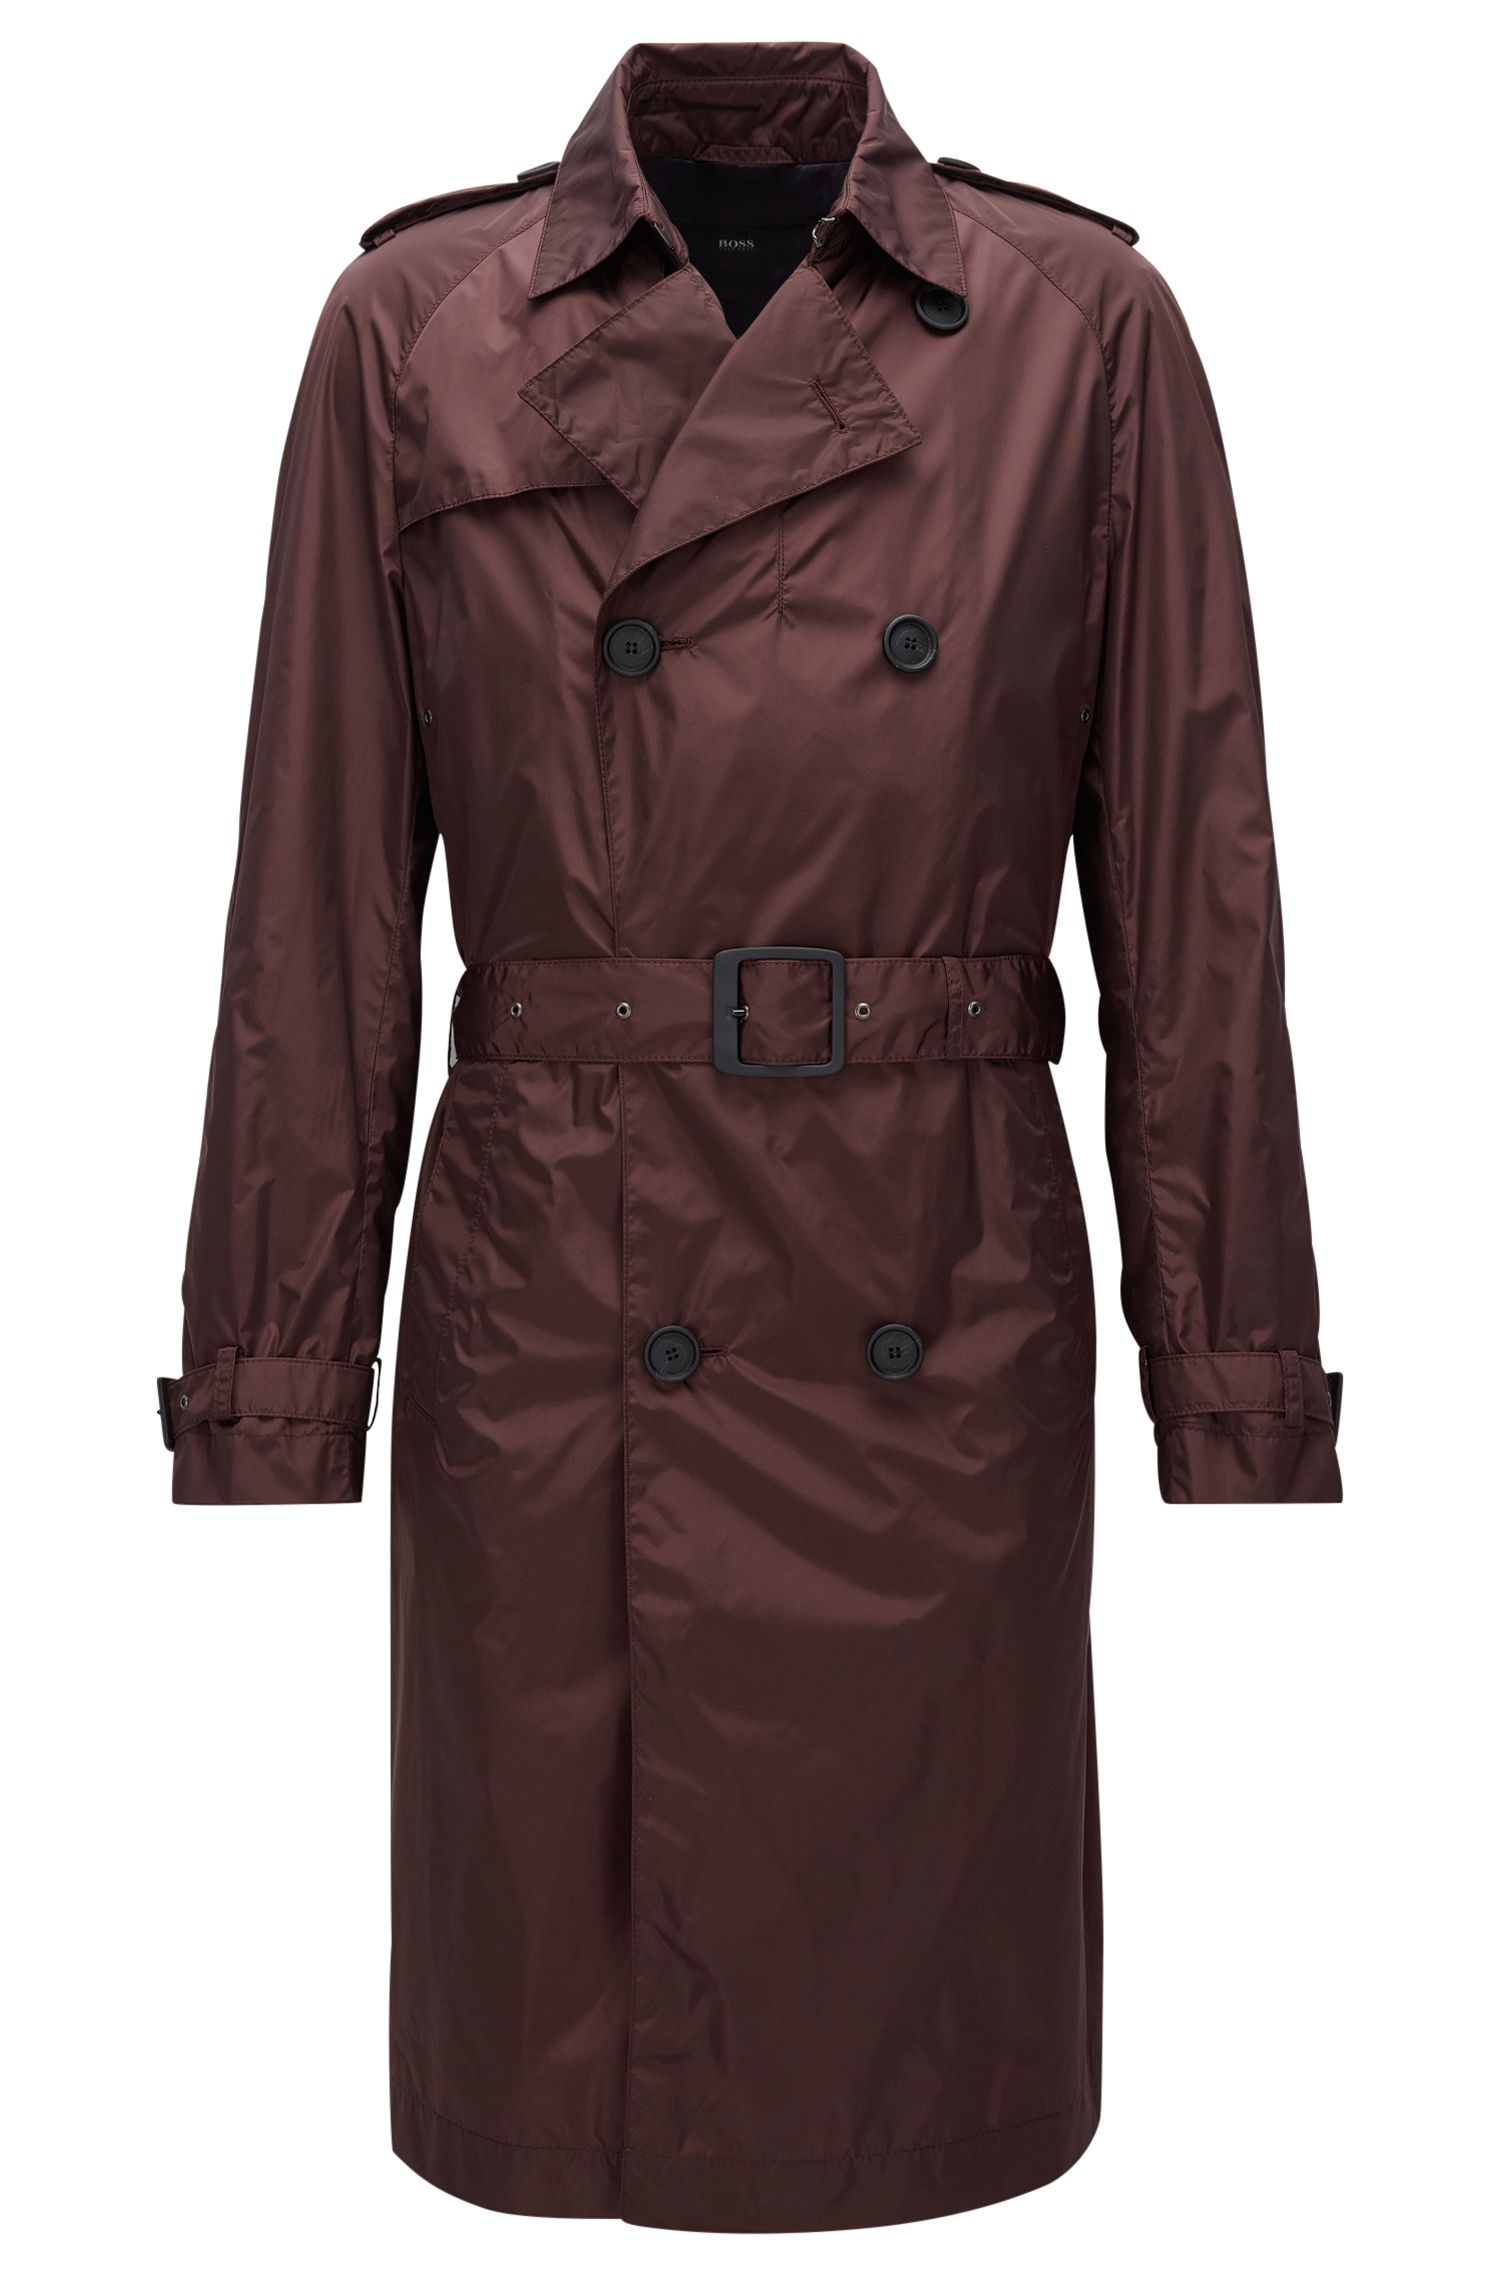 Lange, waterafstotende trenchcoat in een slim-fit model